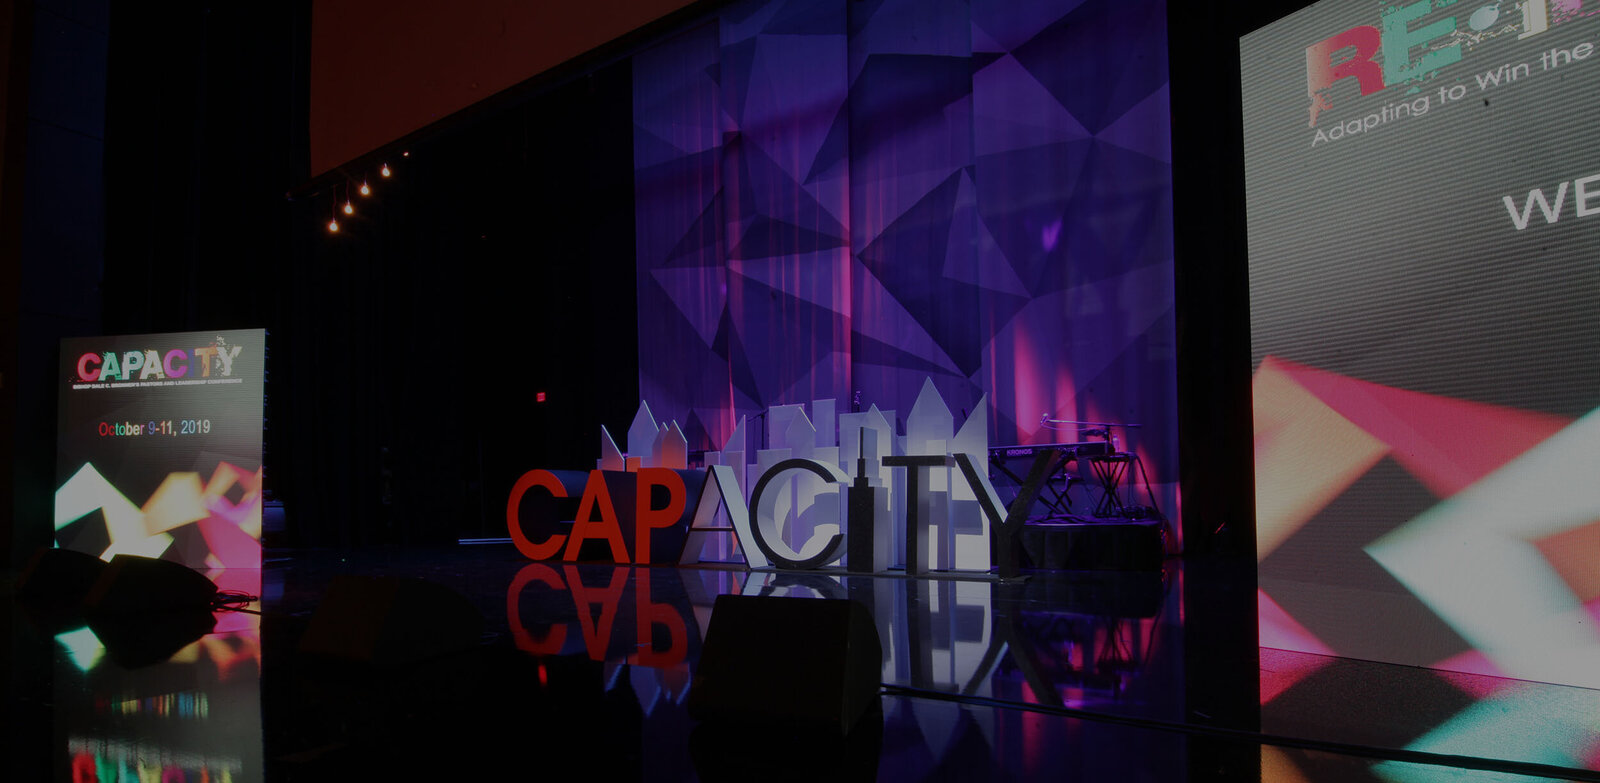 capcity-hp-rev-copy